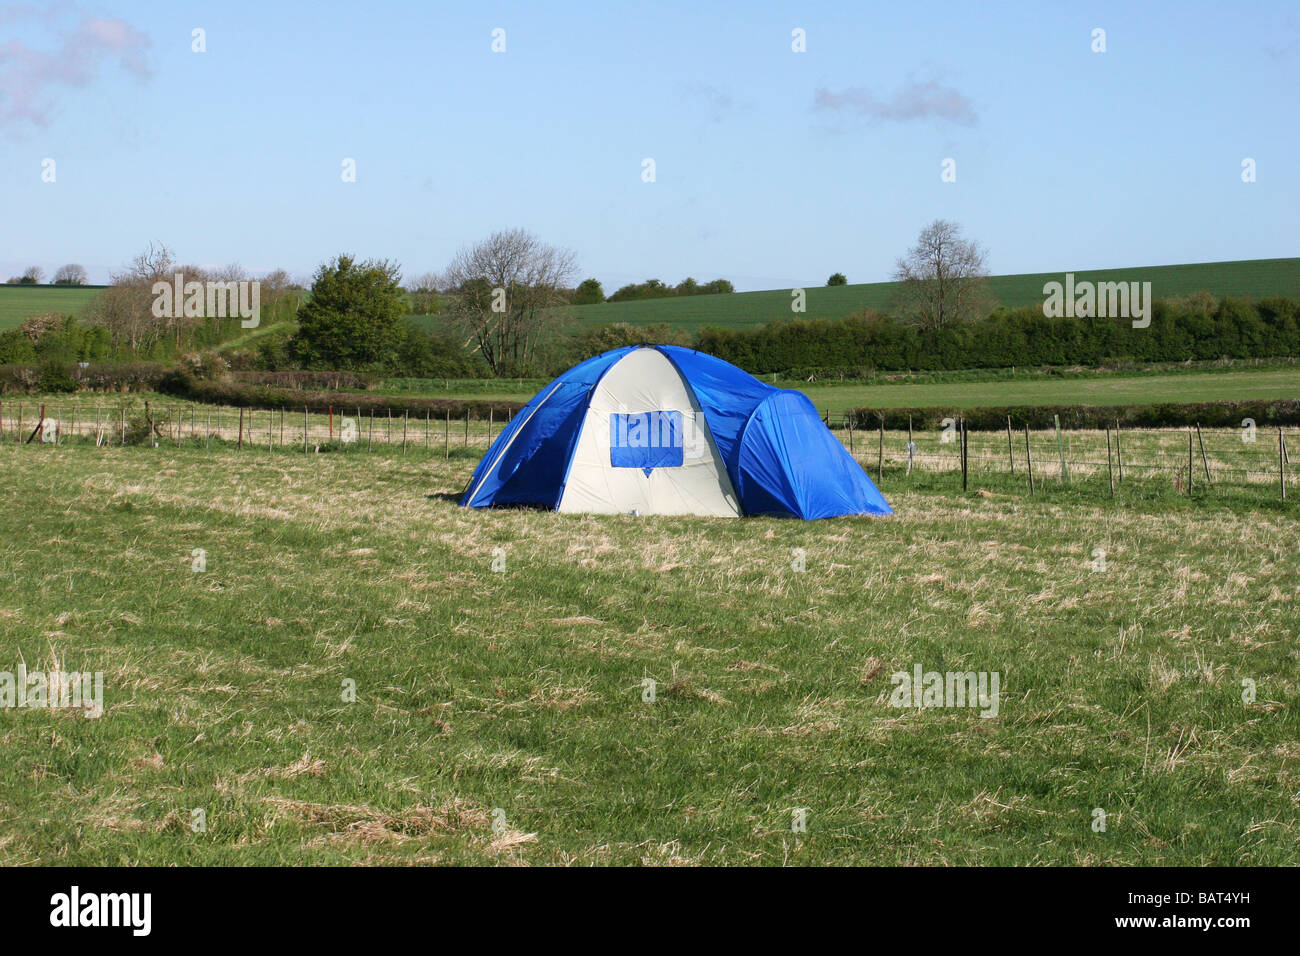 C&ing tent in a field & Camping tent in a field Stock Photo Royalty Free Image: 23887685 ...